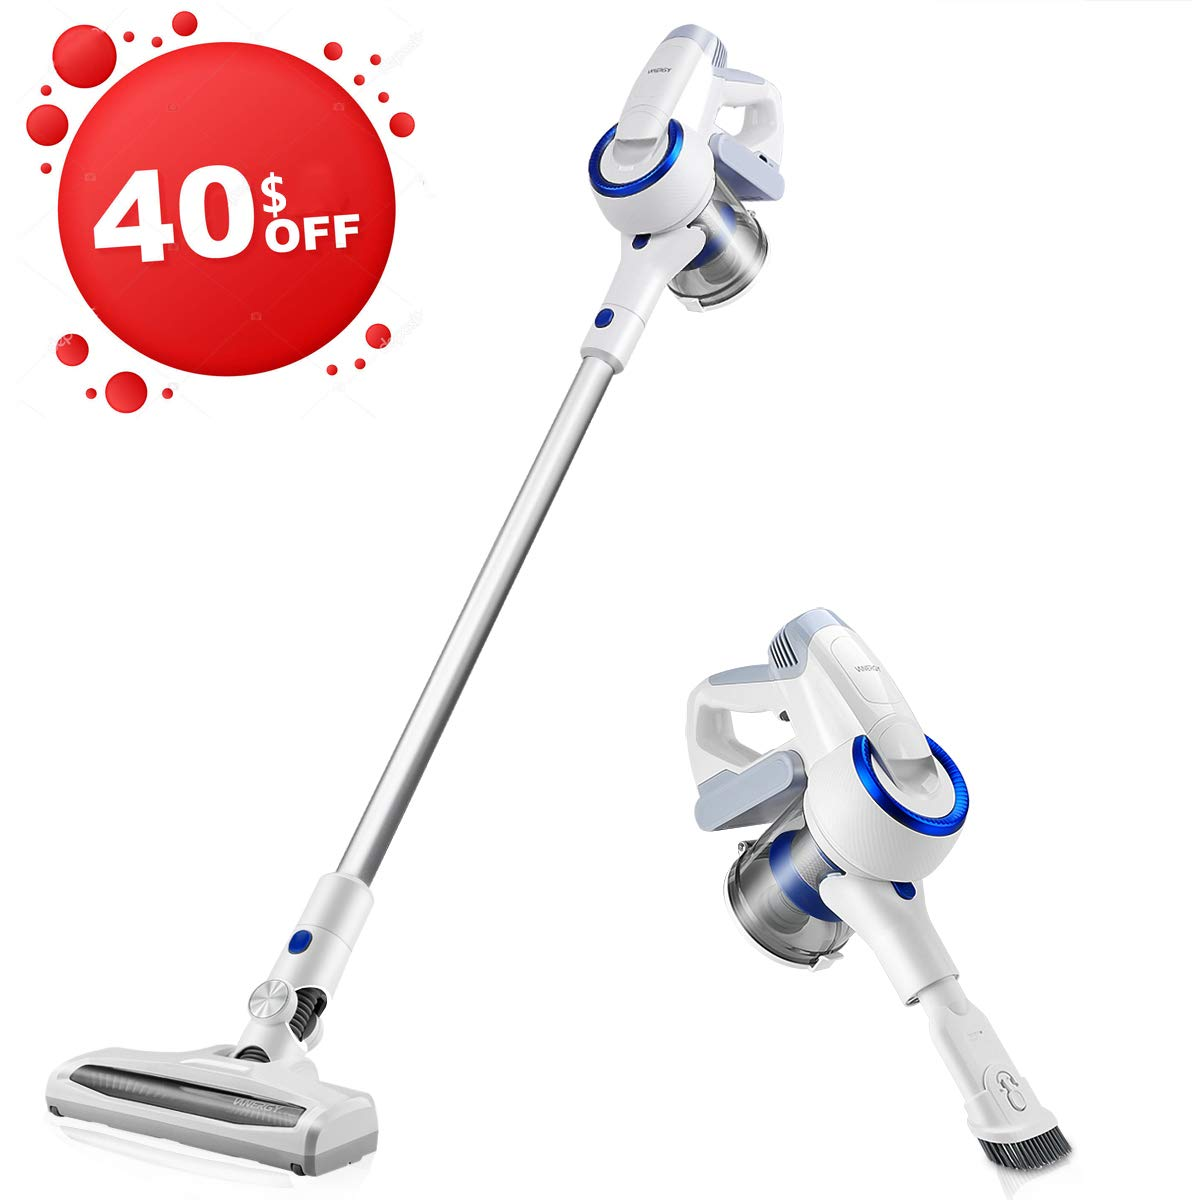 Vanergy Cordless Vacuum Cleaner, Stick Vacuum 2 in 1, 150W Brushless Motor, 5 Stage Hepa Filter, Detachable Lithium Battery & Ultra-Wide Roller Brush, for Deep Cleaning and Pet Owner by VANERGY